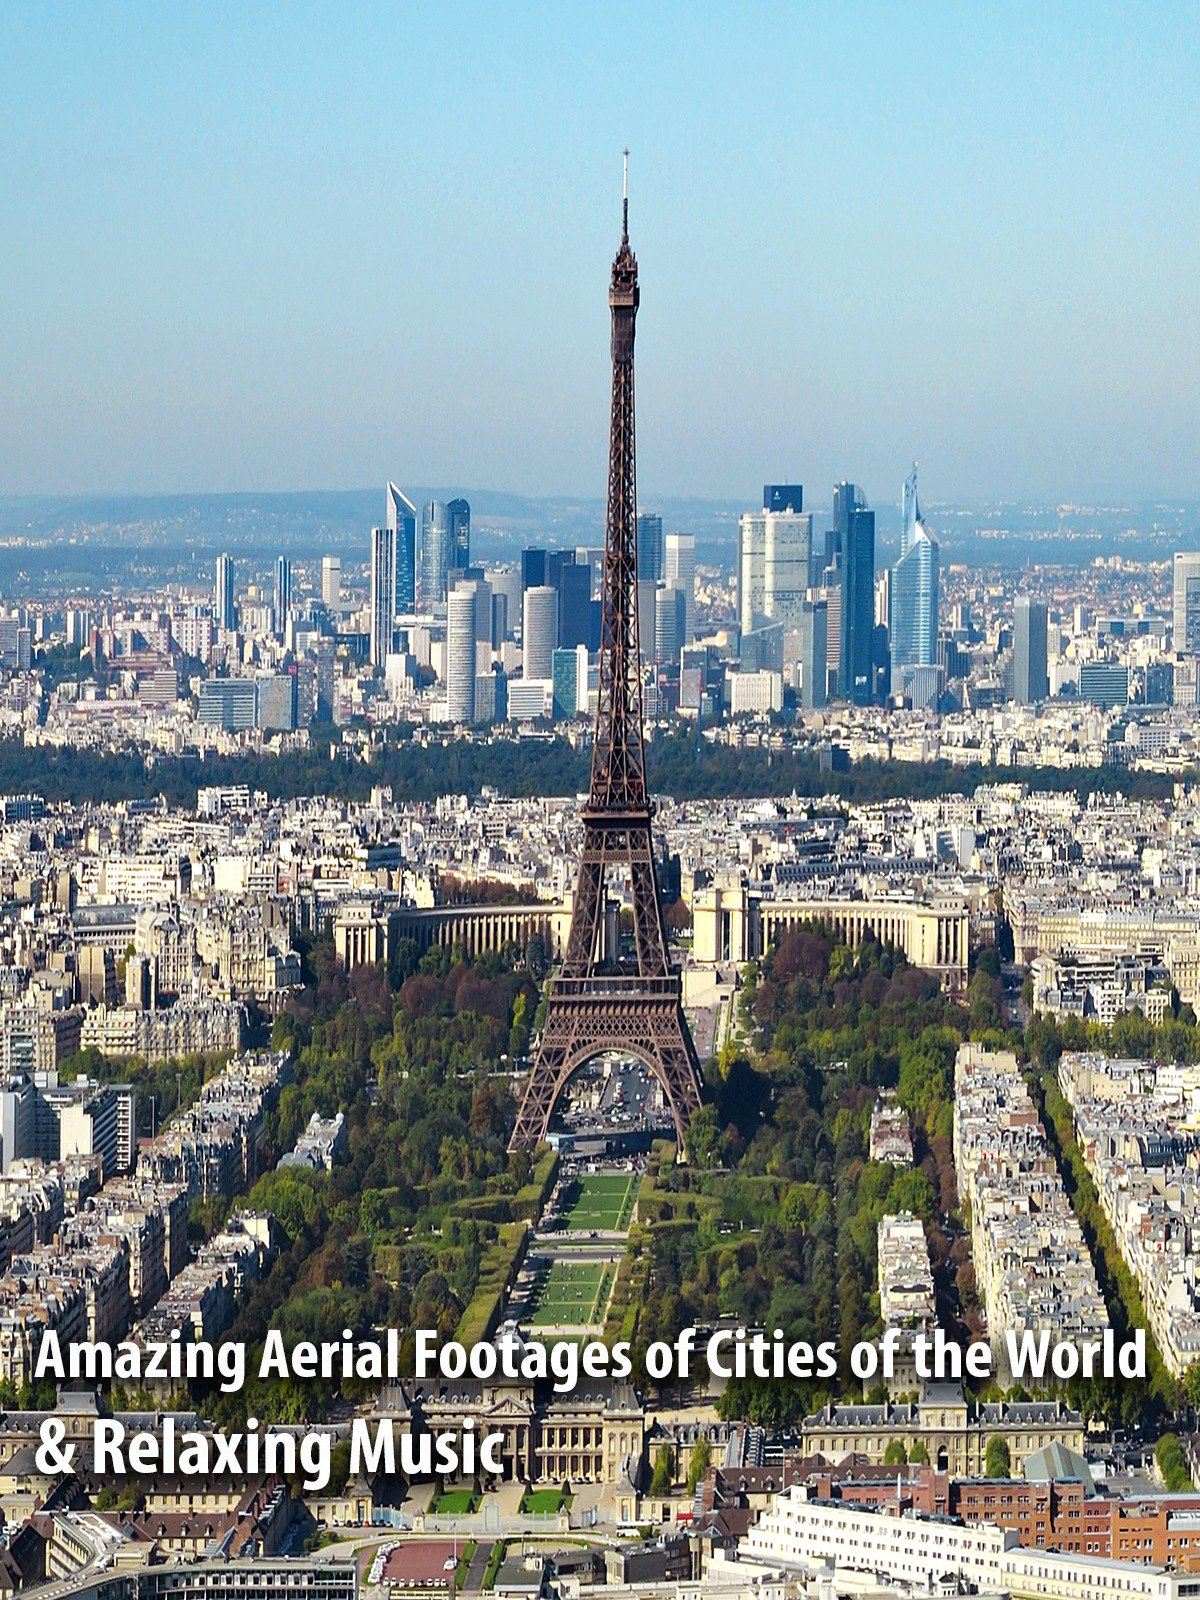 Amazing Aerial Footages of Cities of the World & Relaxing Music